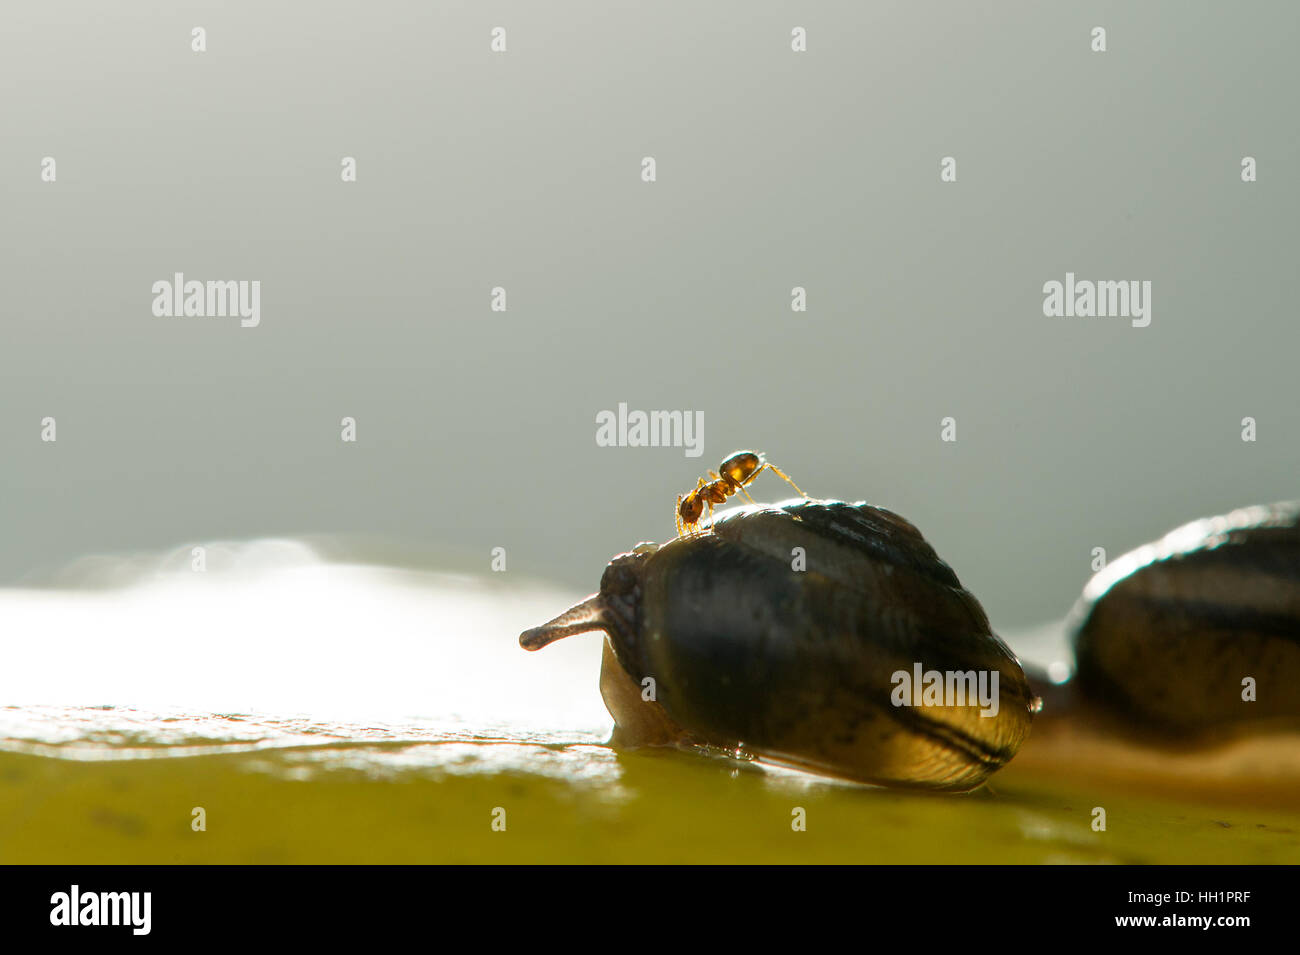 A tiny ant climbs onto a snail that is on a large yellow leaf. - Stock Image